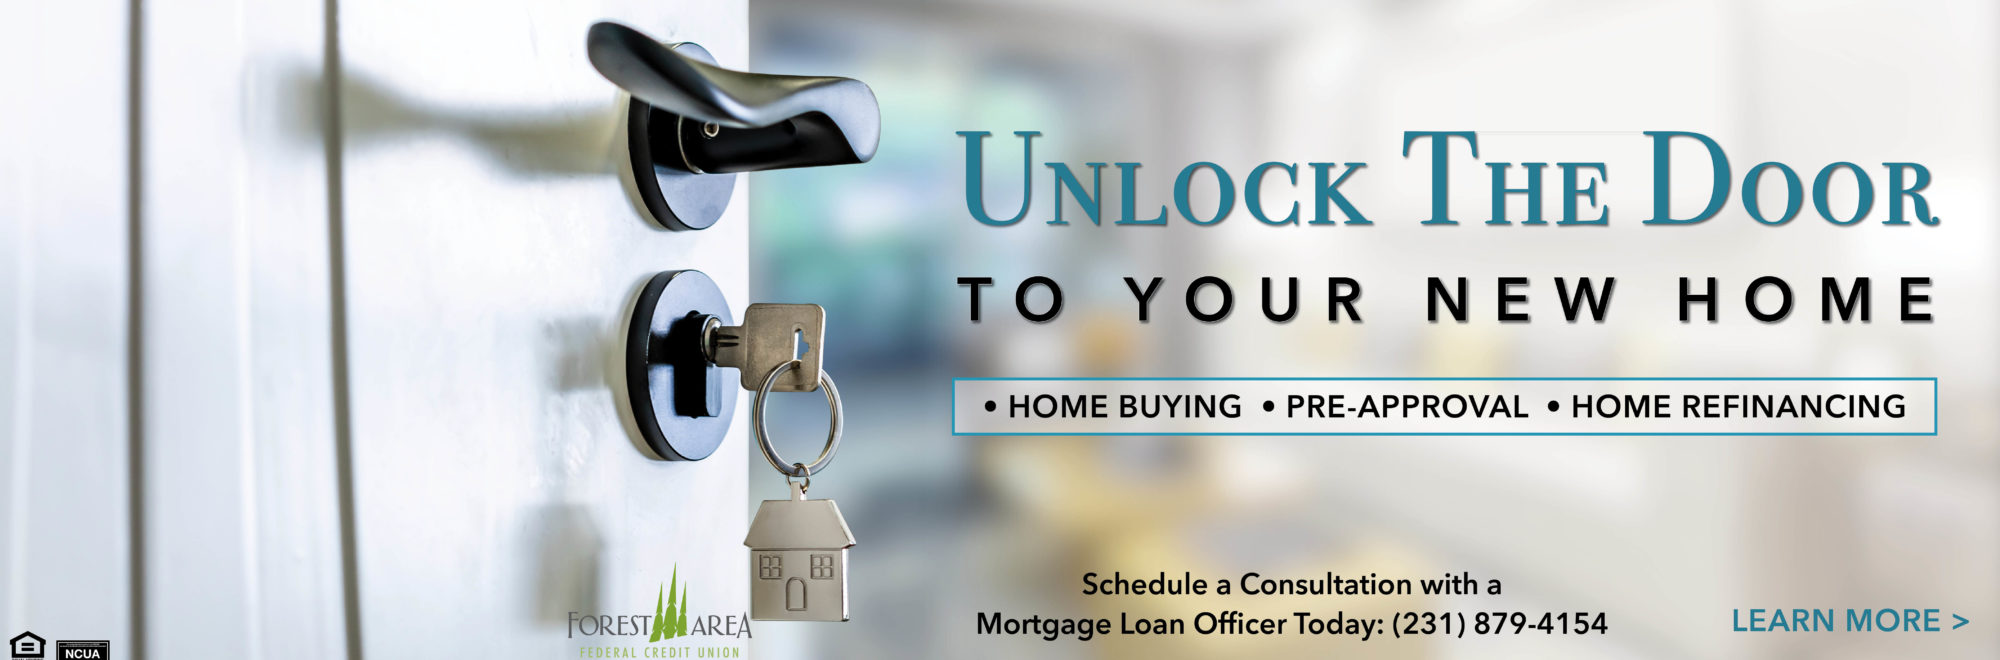 Take advantage of the lowest rates in decades. Schedule a consultation with a loan officer today at 231-879-4154